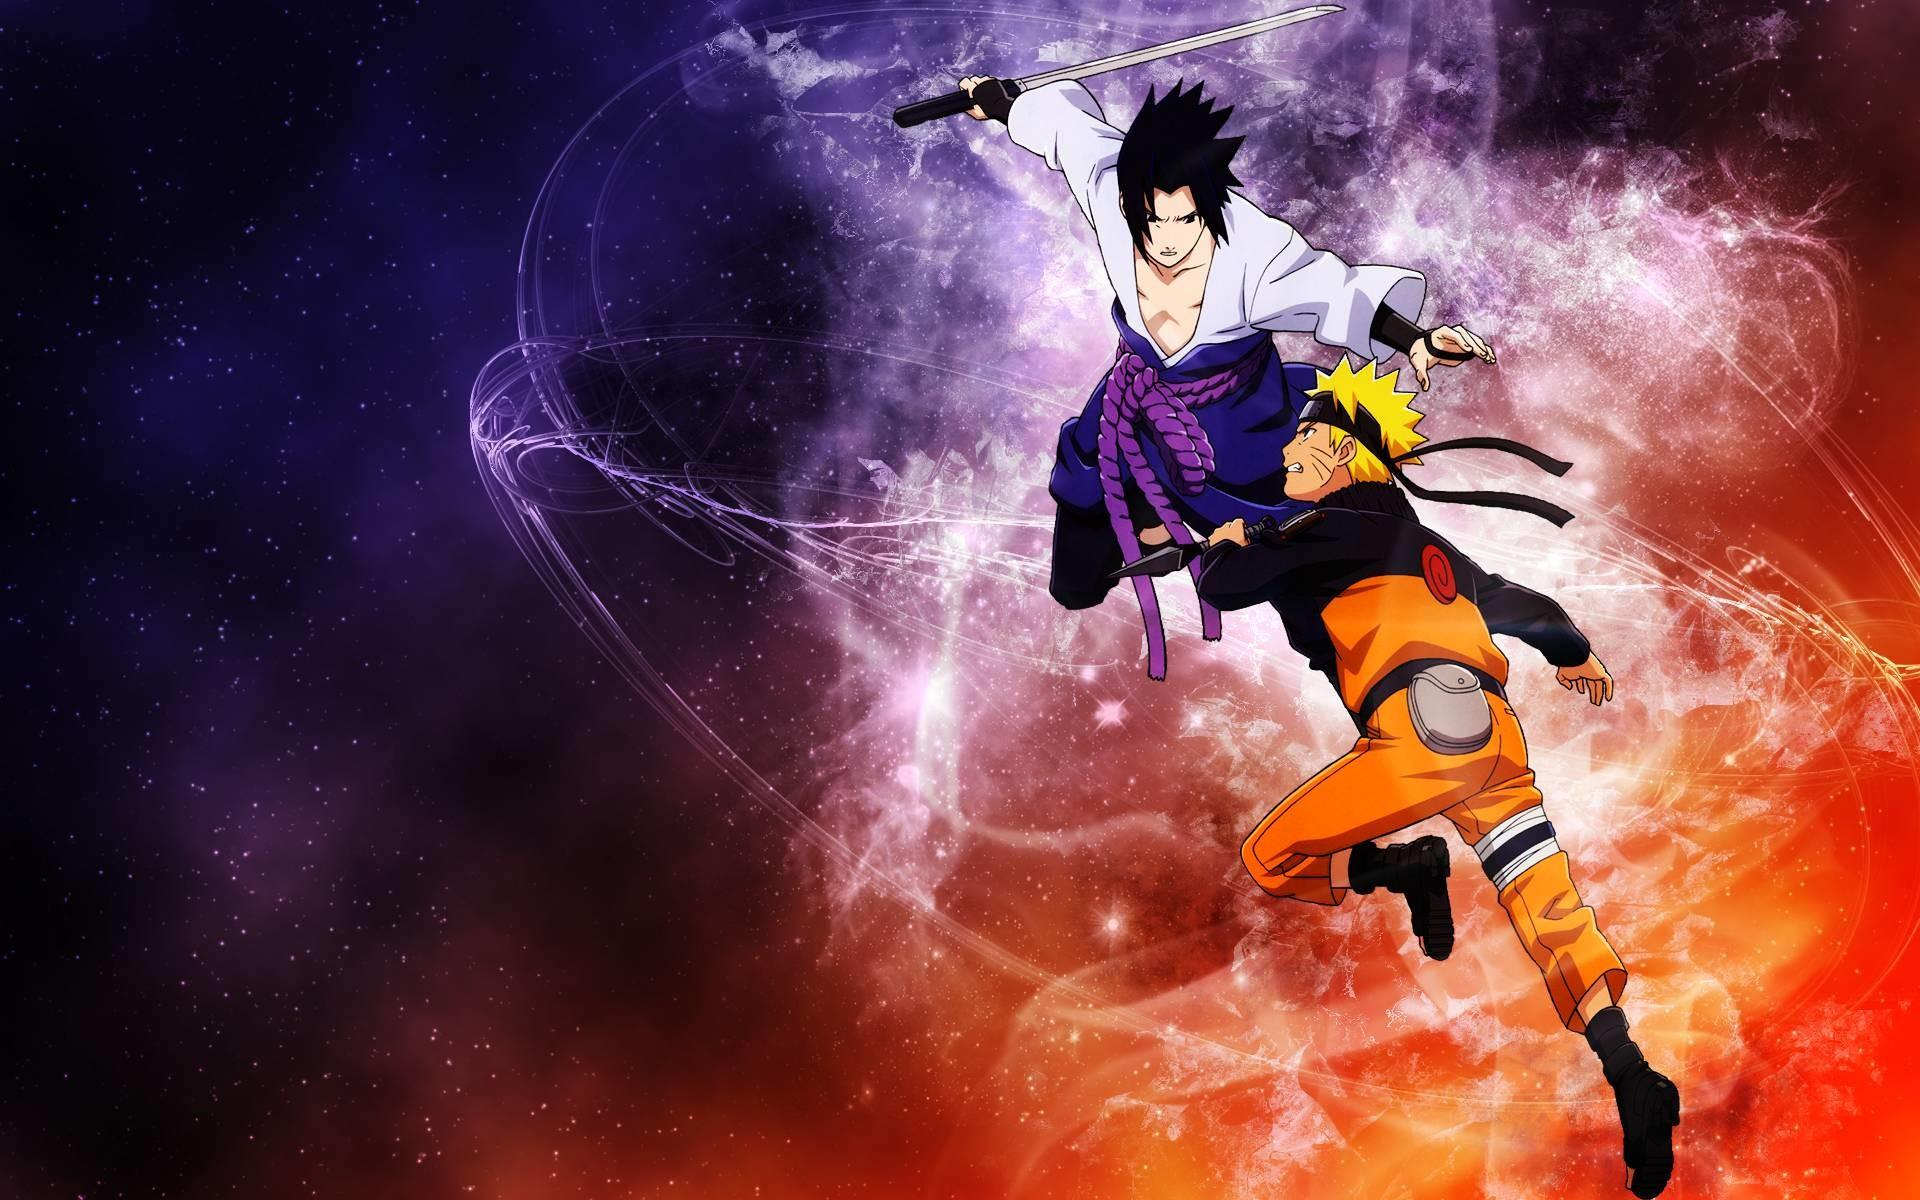 Aesthetic Hd Naruto Wallpapers Wallpaper Cave